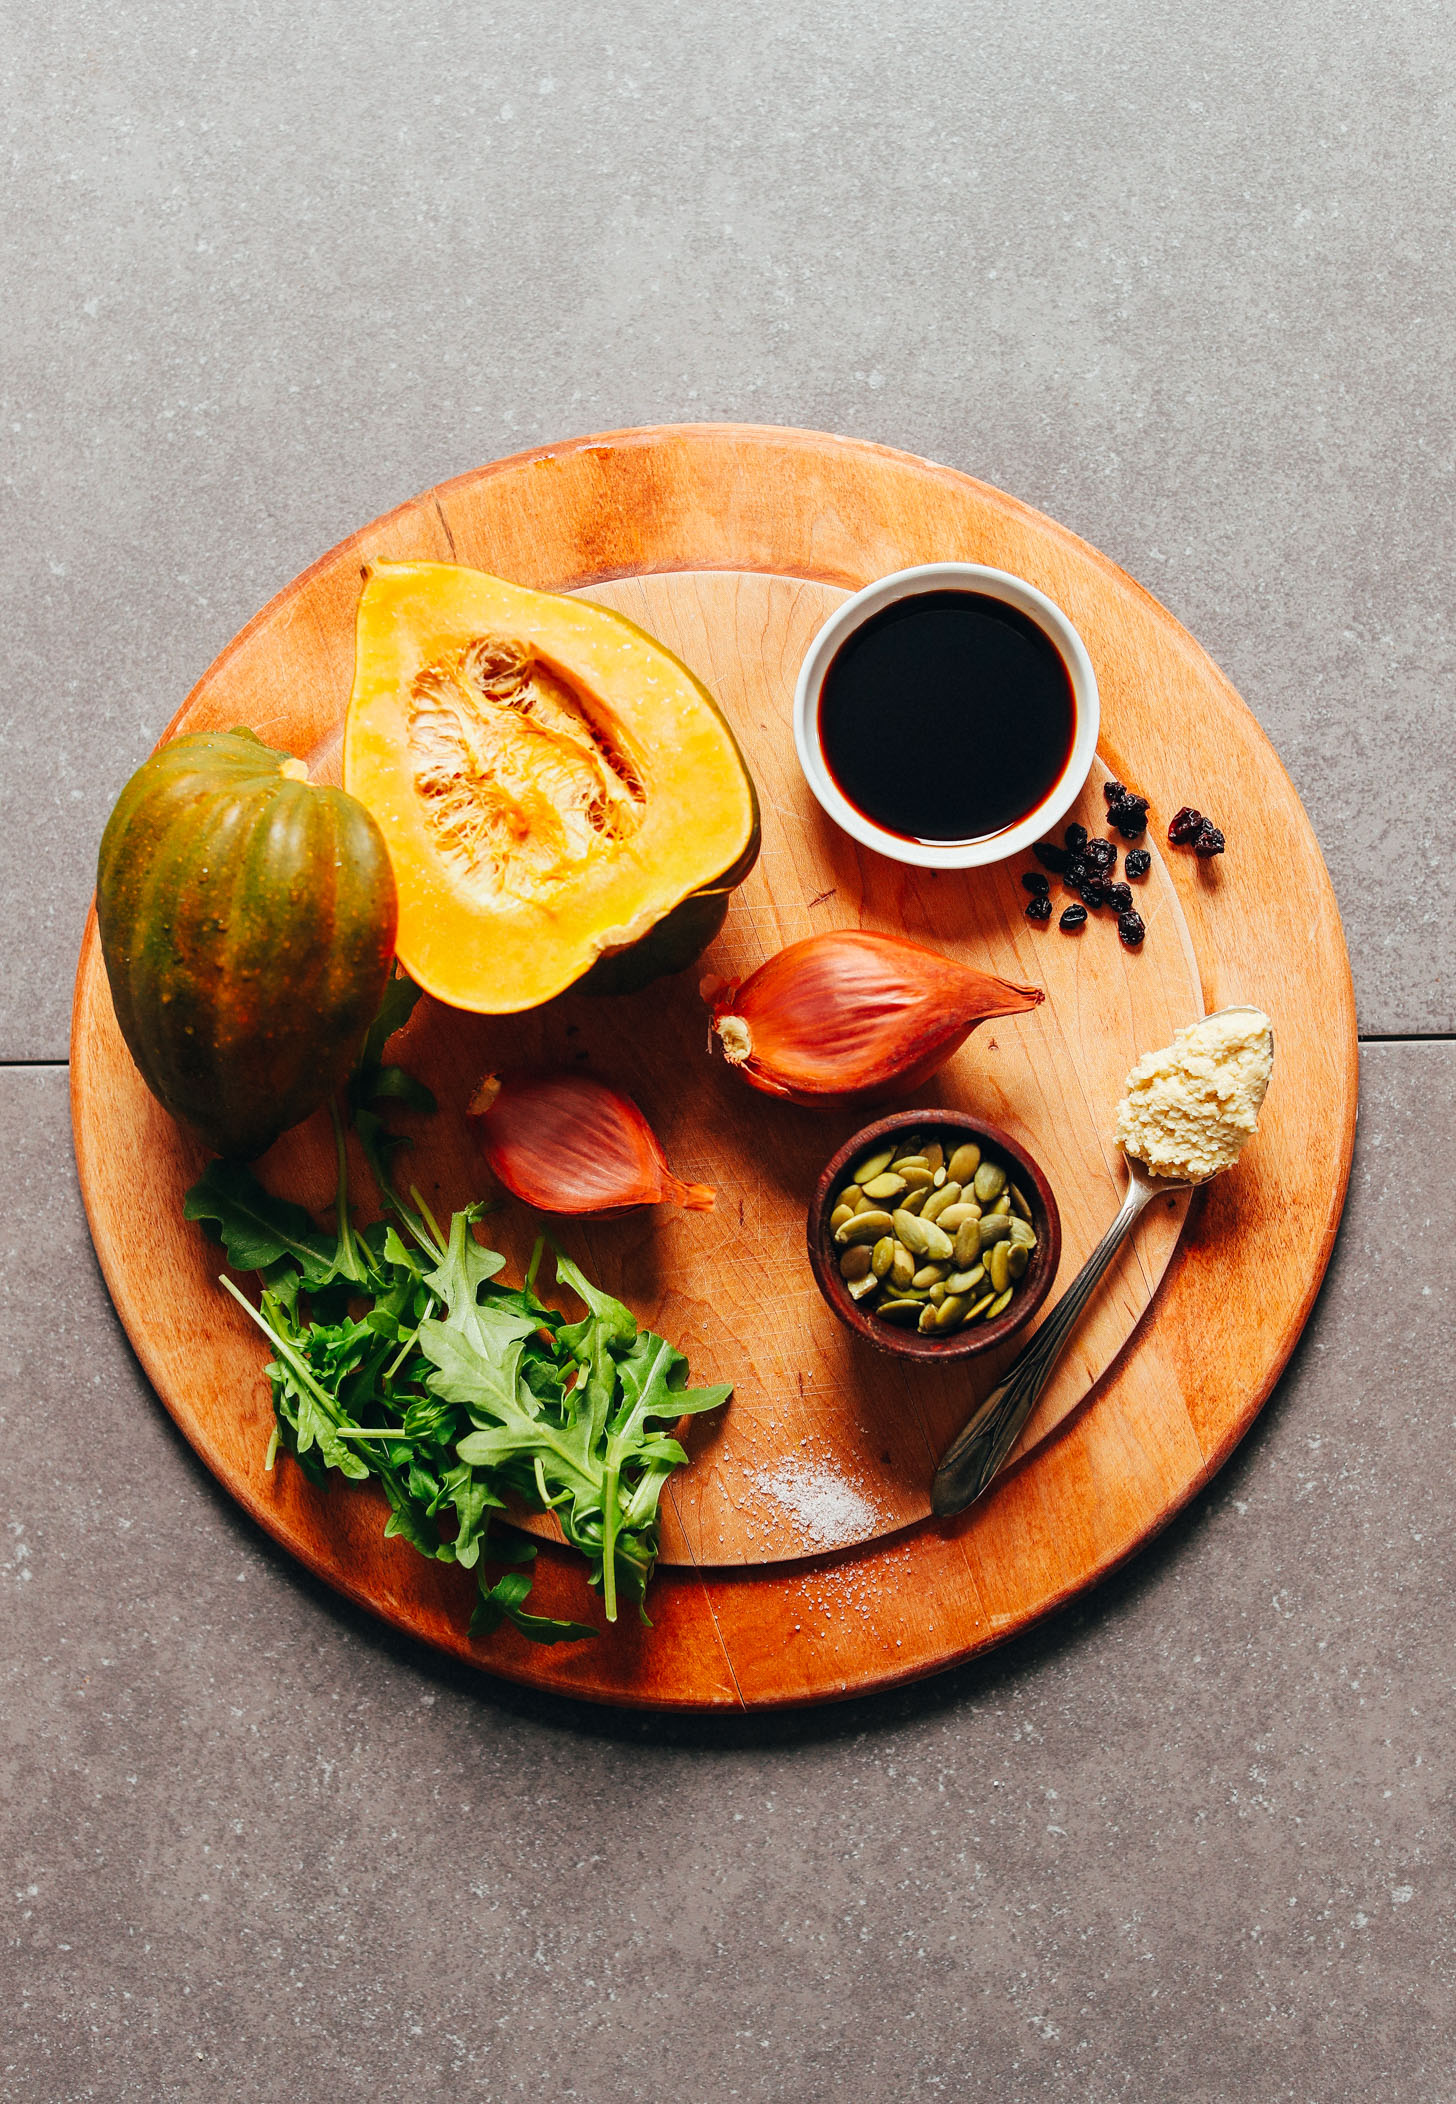 Wood cutting board with acorn squash, shallots and other ingredients for making a delicious plant-based fall salad